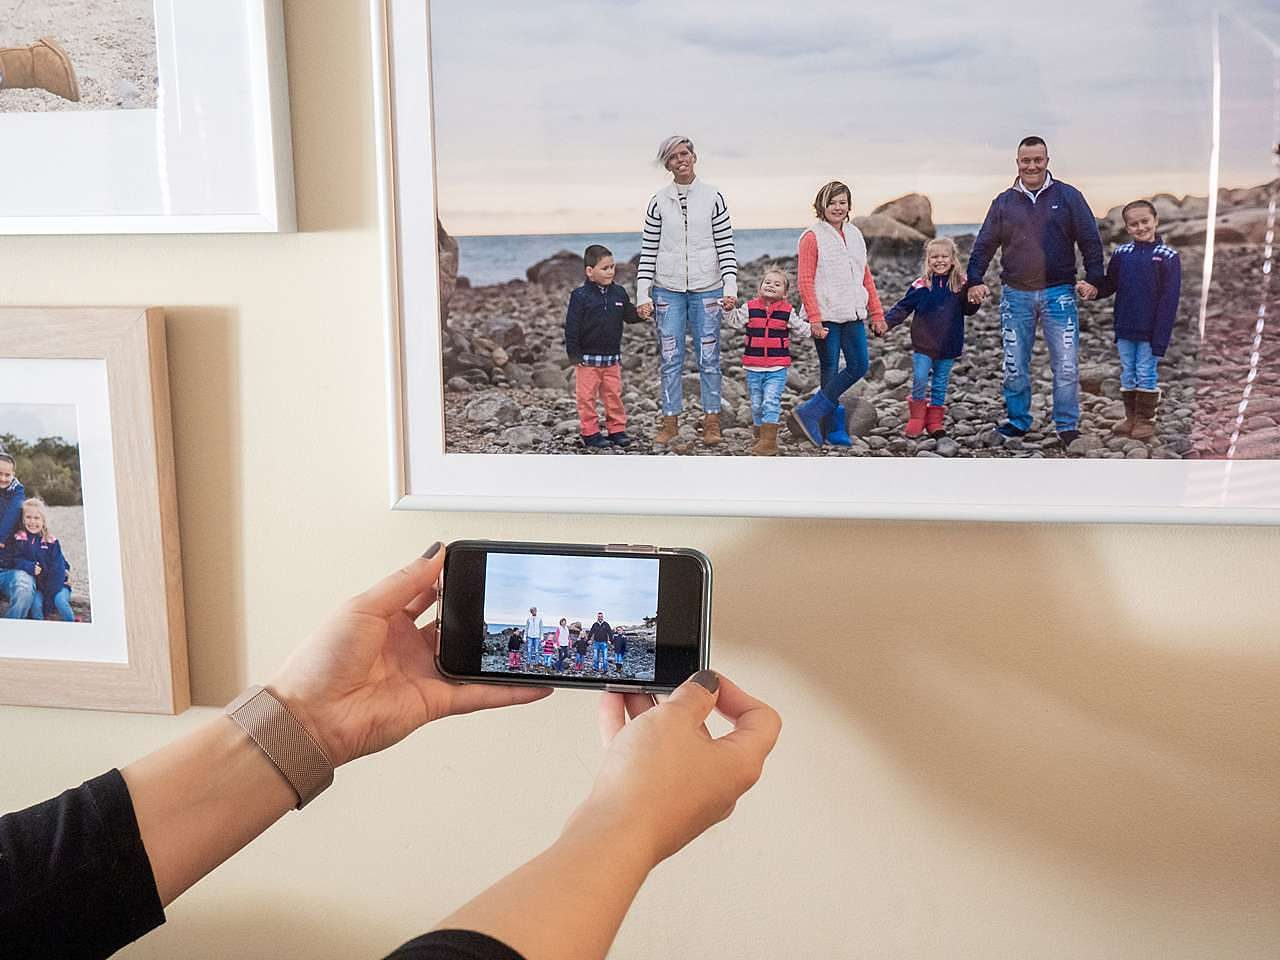 Print and frame phone photos of family